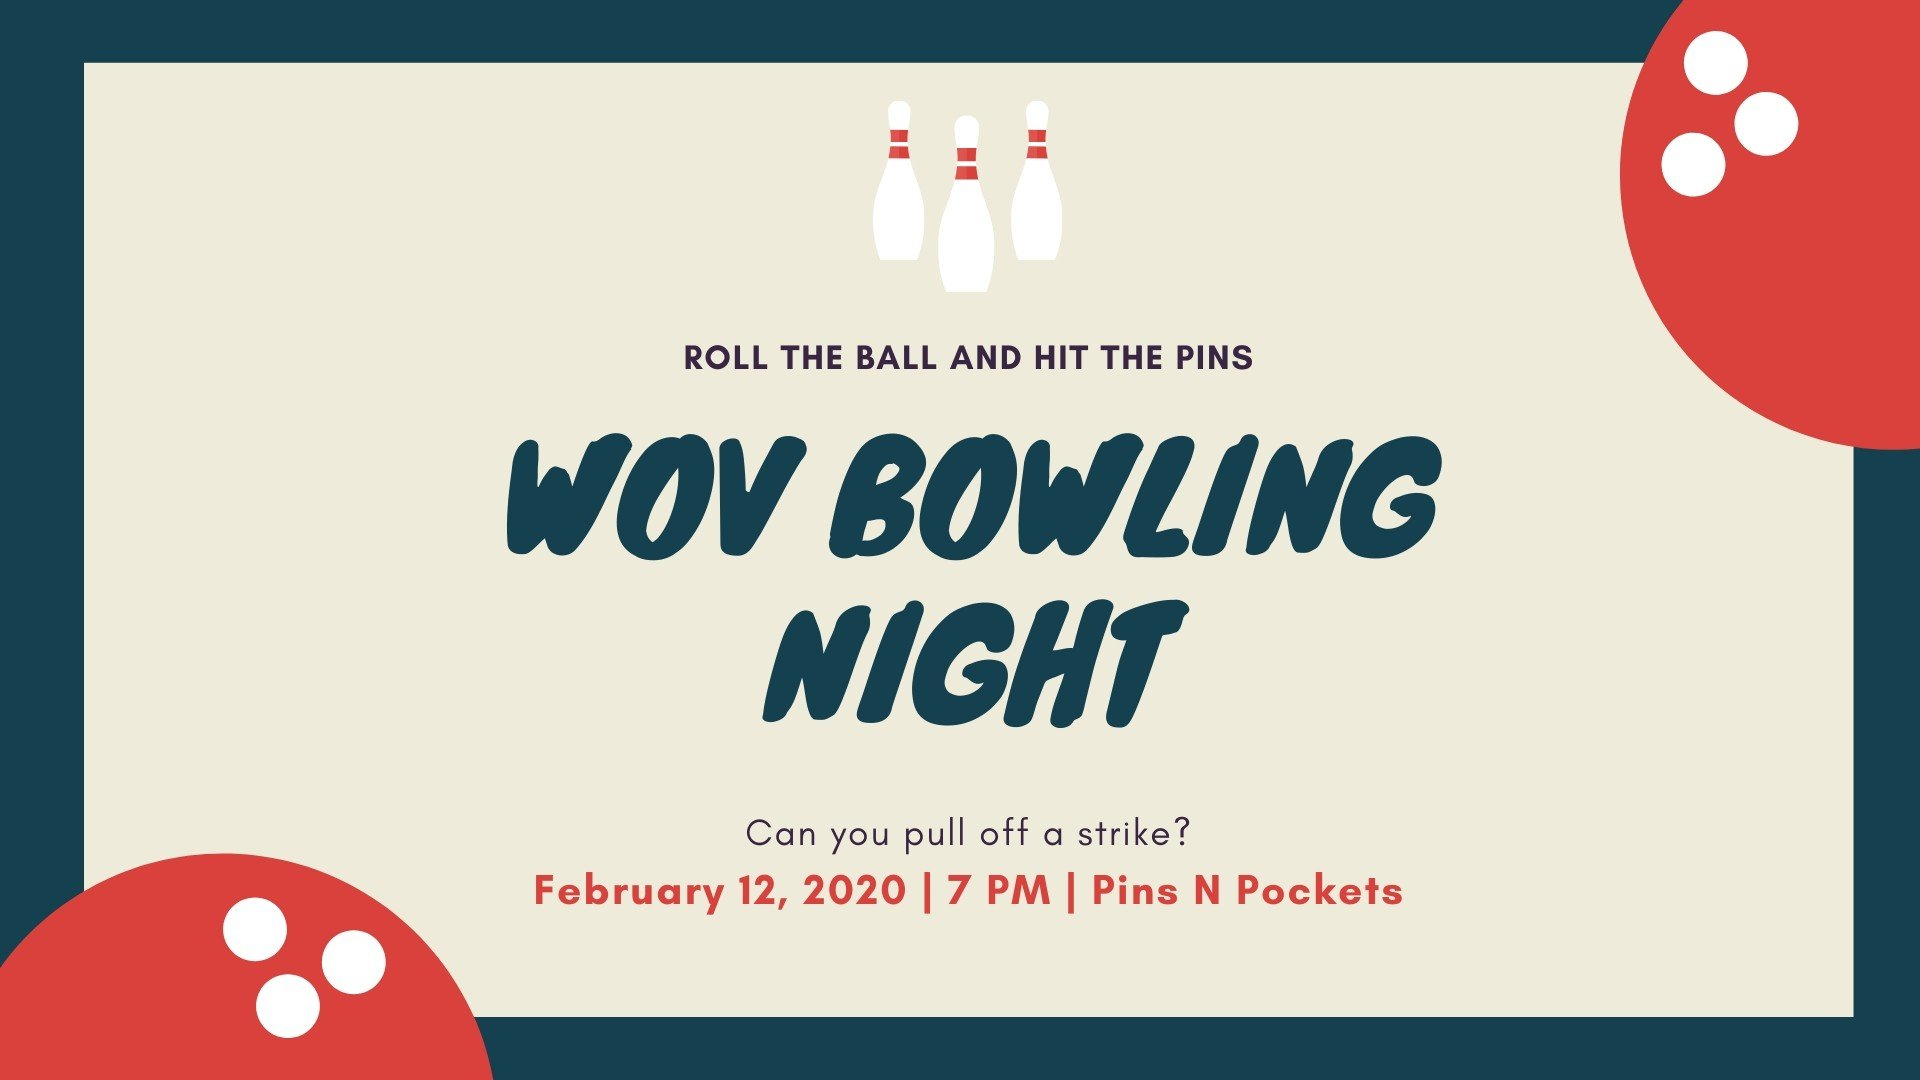 Copy of Red Bowling Ball and Pins Bowling Invitation